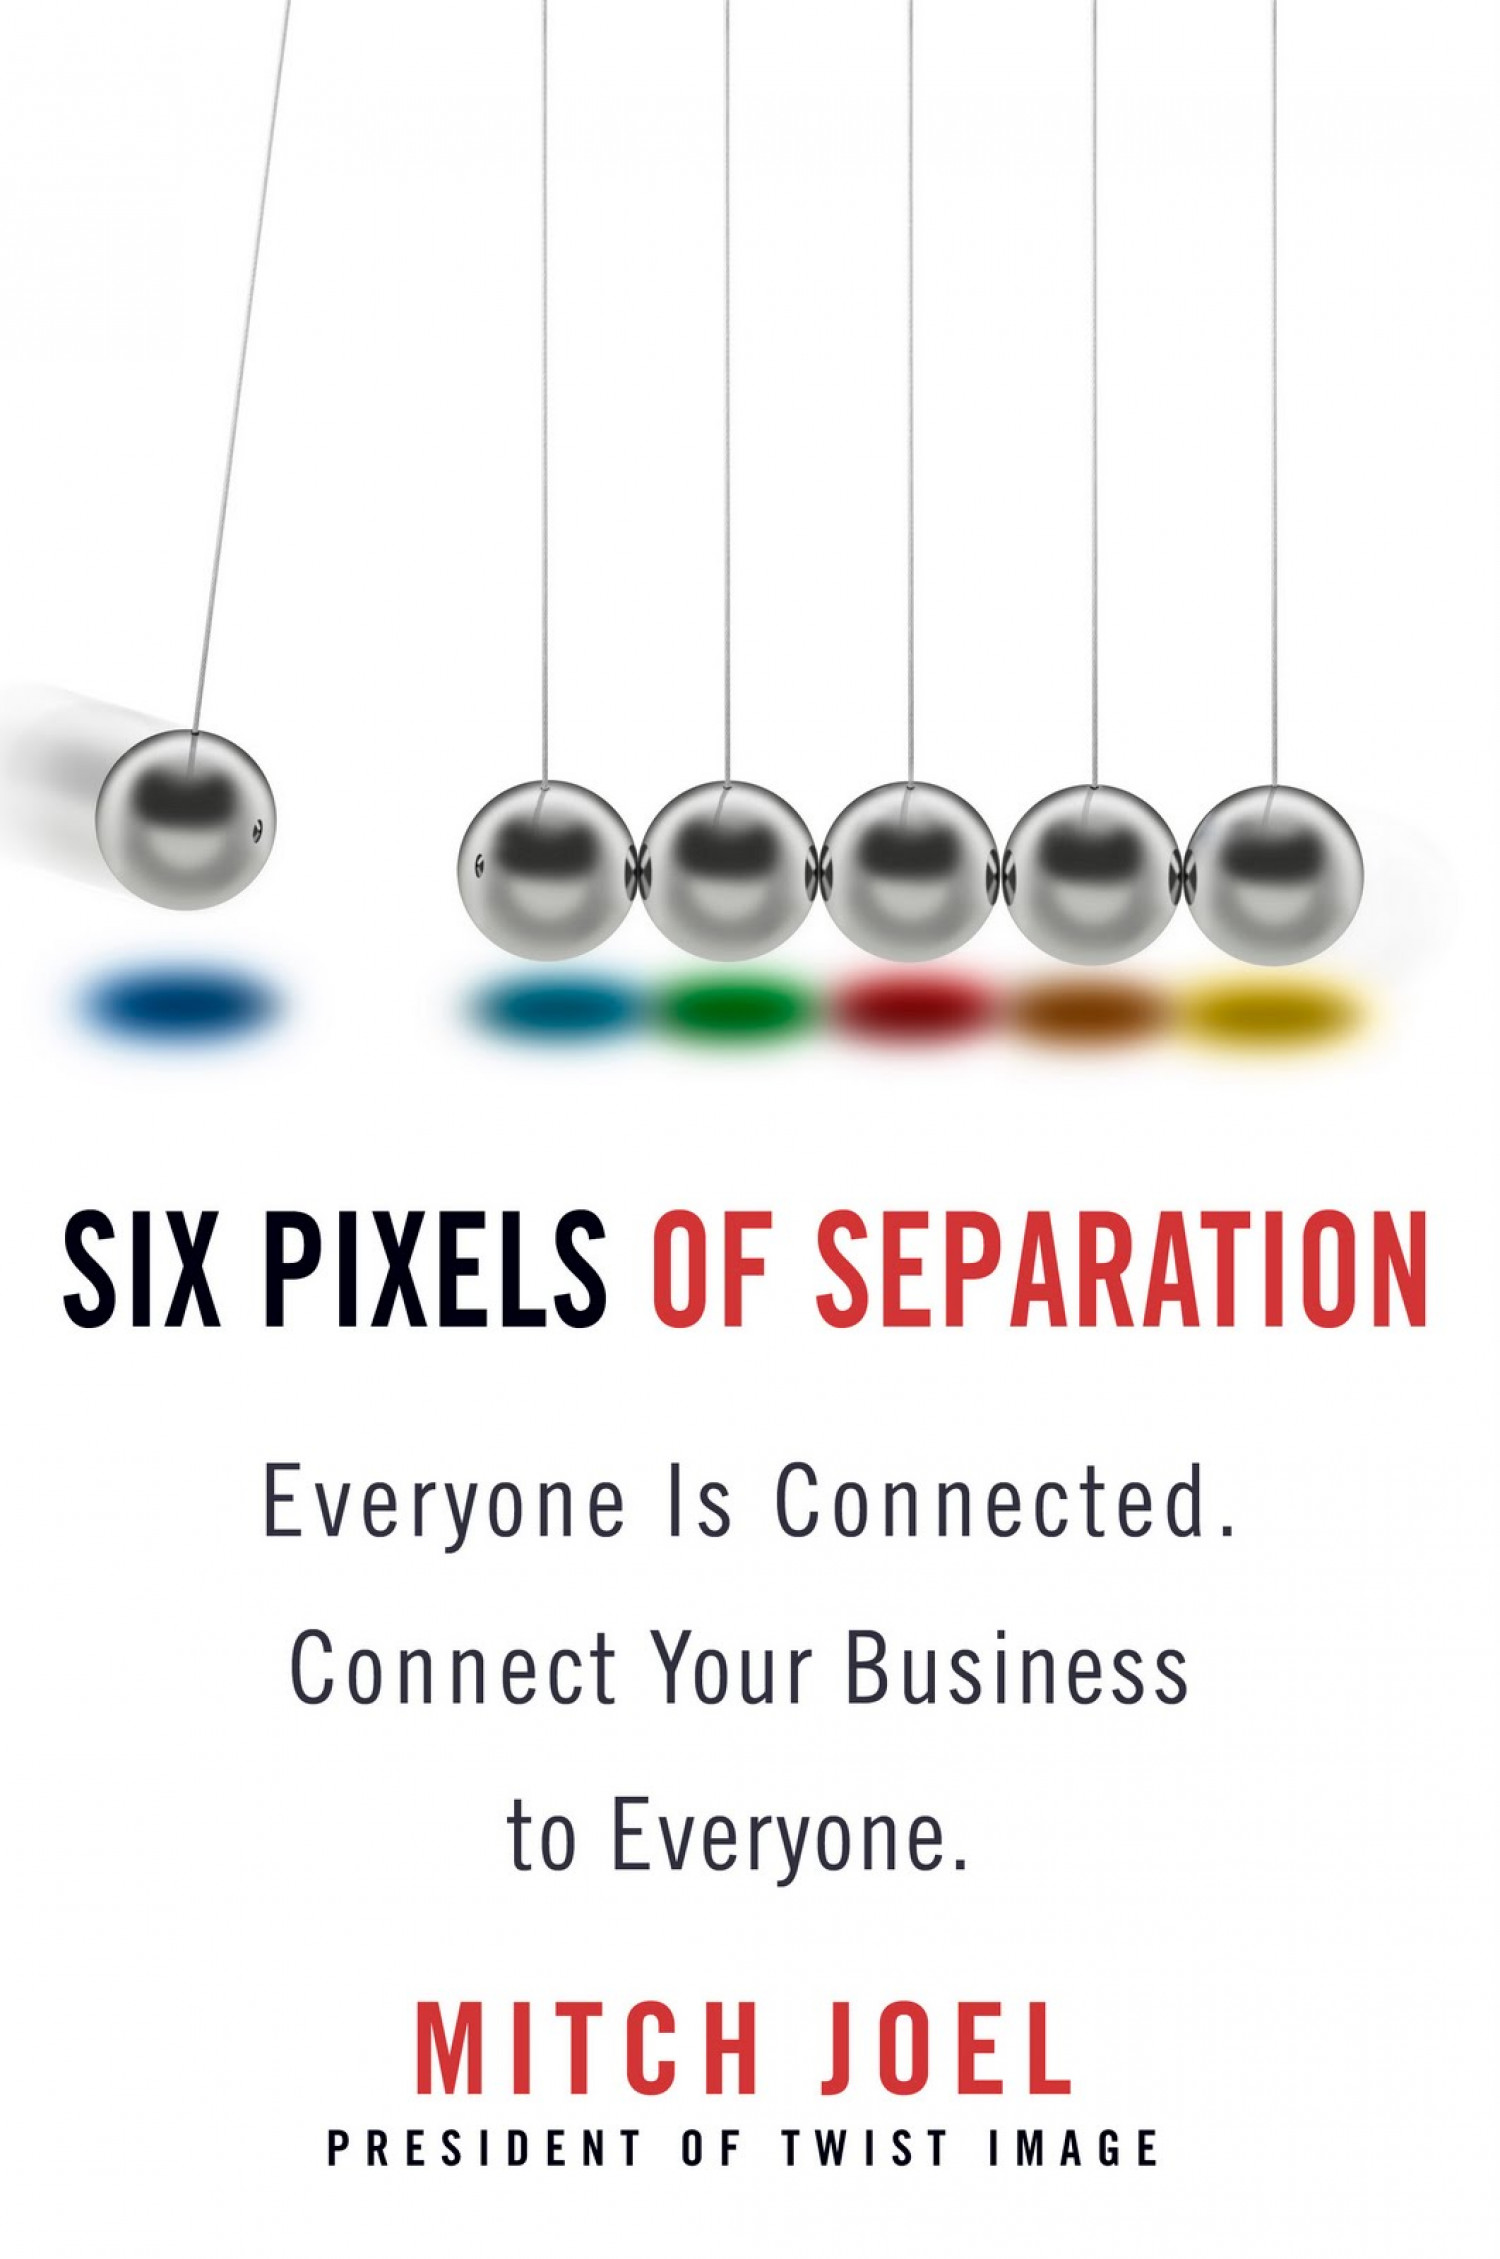 Six Pixels of Separation Infographic